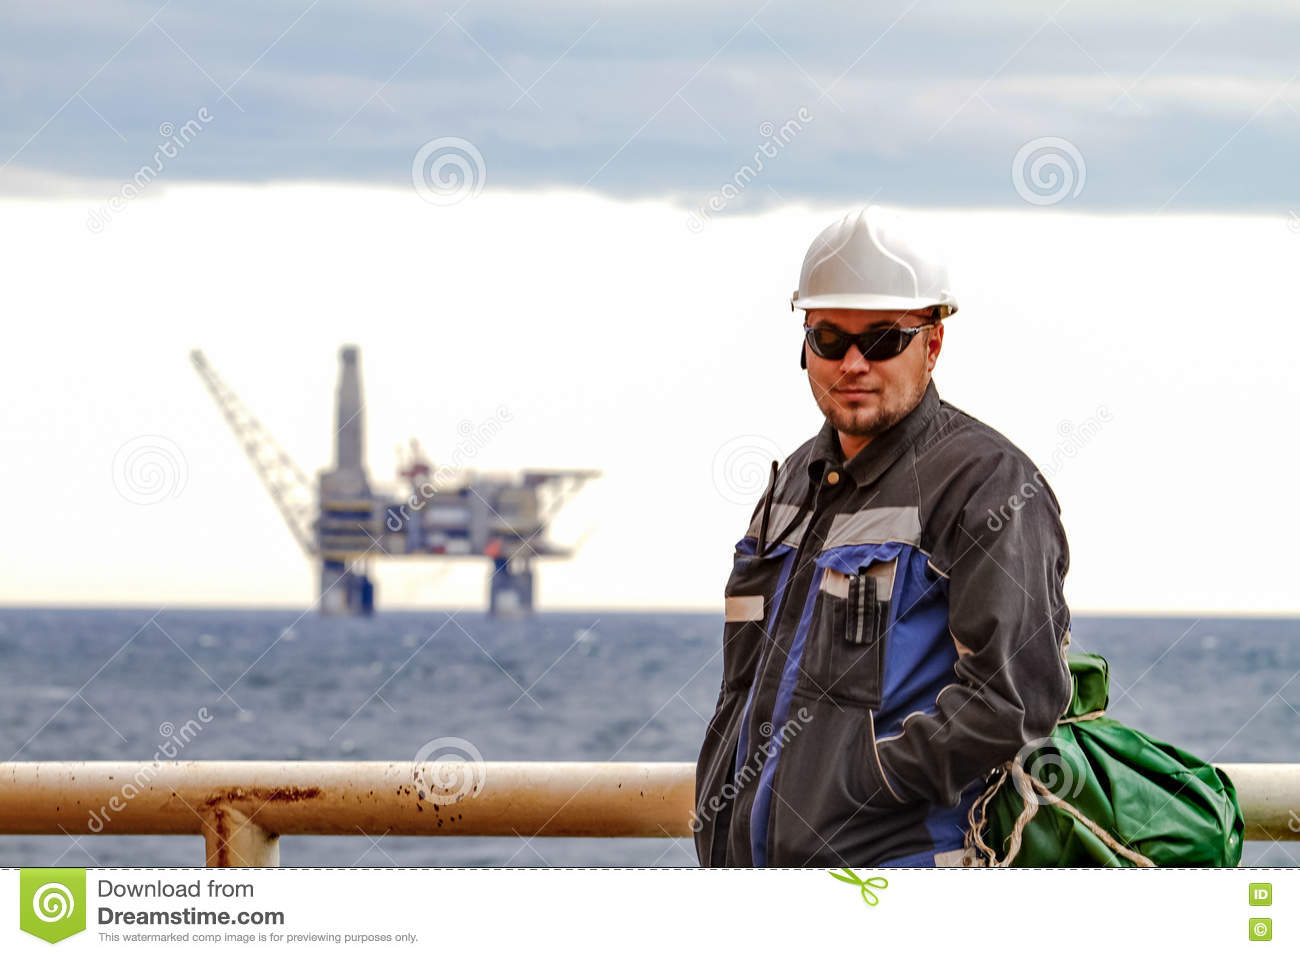 Oilman shift workers on the deck of the ship on the background offshore oil shelf planforms. Work on the way to work